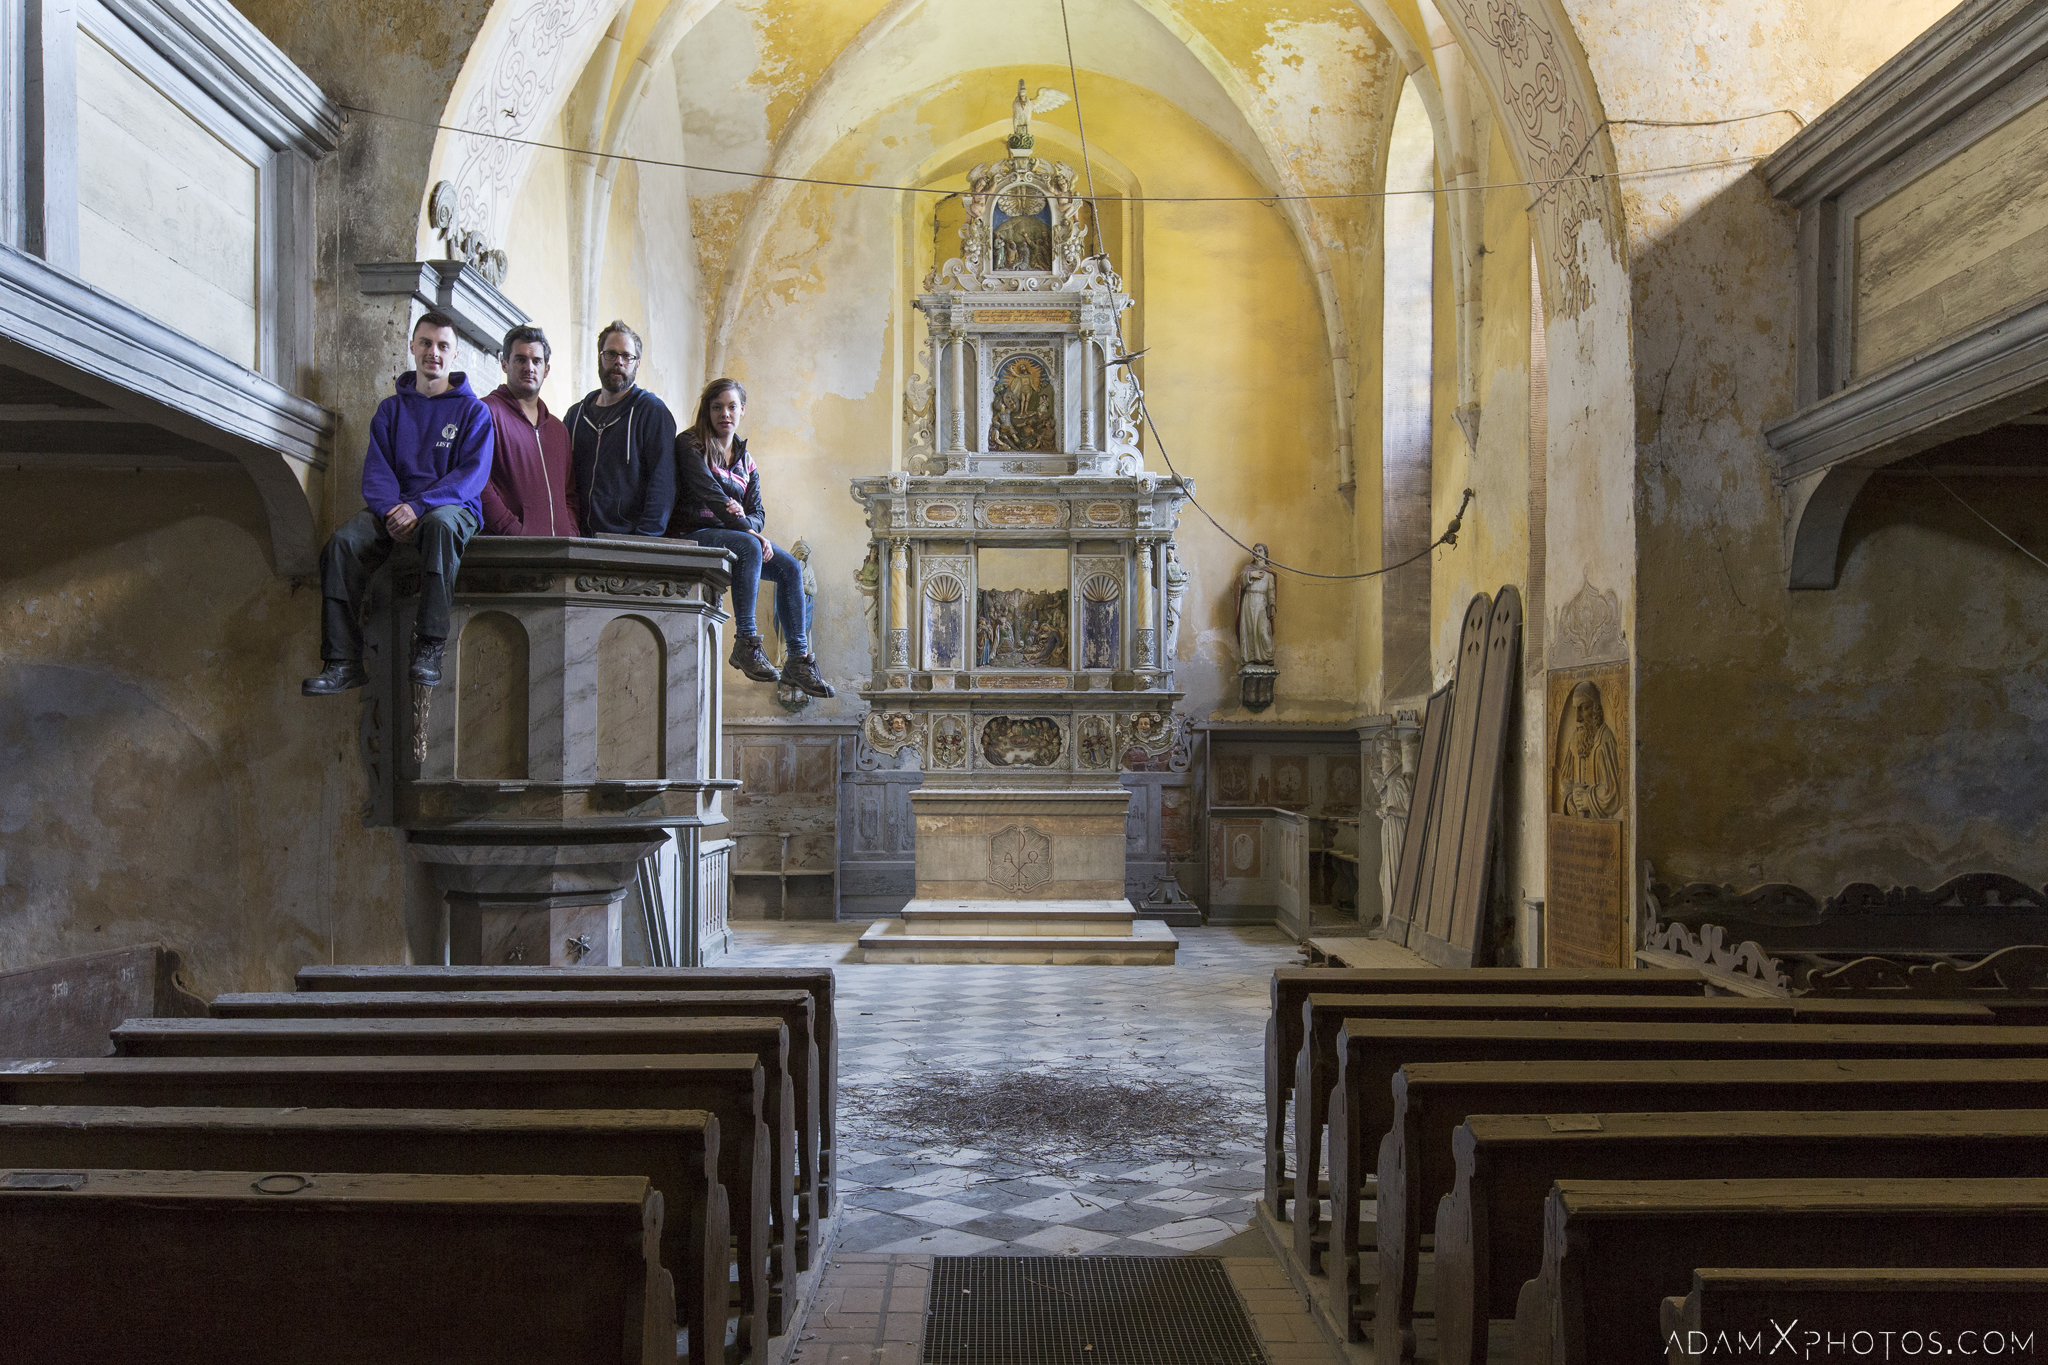 Team shot group shot pulpit altar Chapel B Church Urbex Poland Adam X Urban Exploration Permission Visit Access 2016 Abandoned decay lost forgotten derelict location haunting eerie